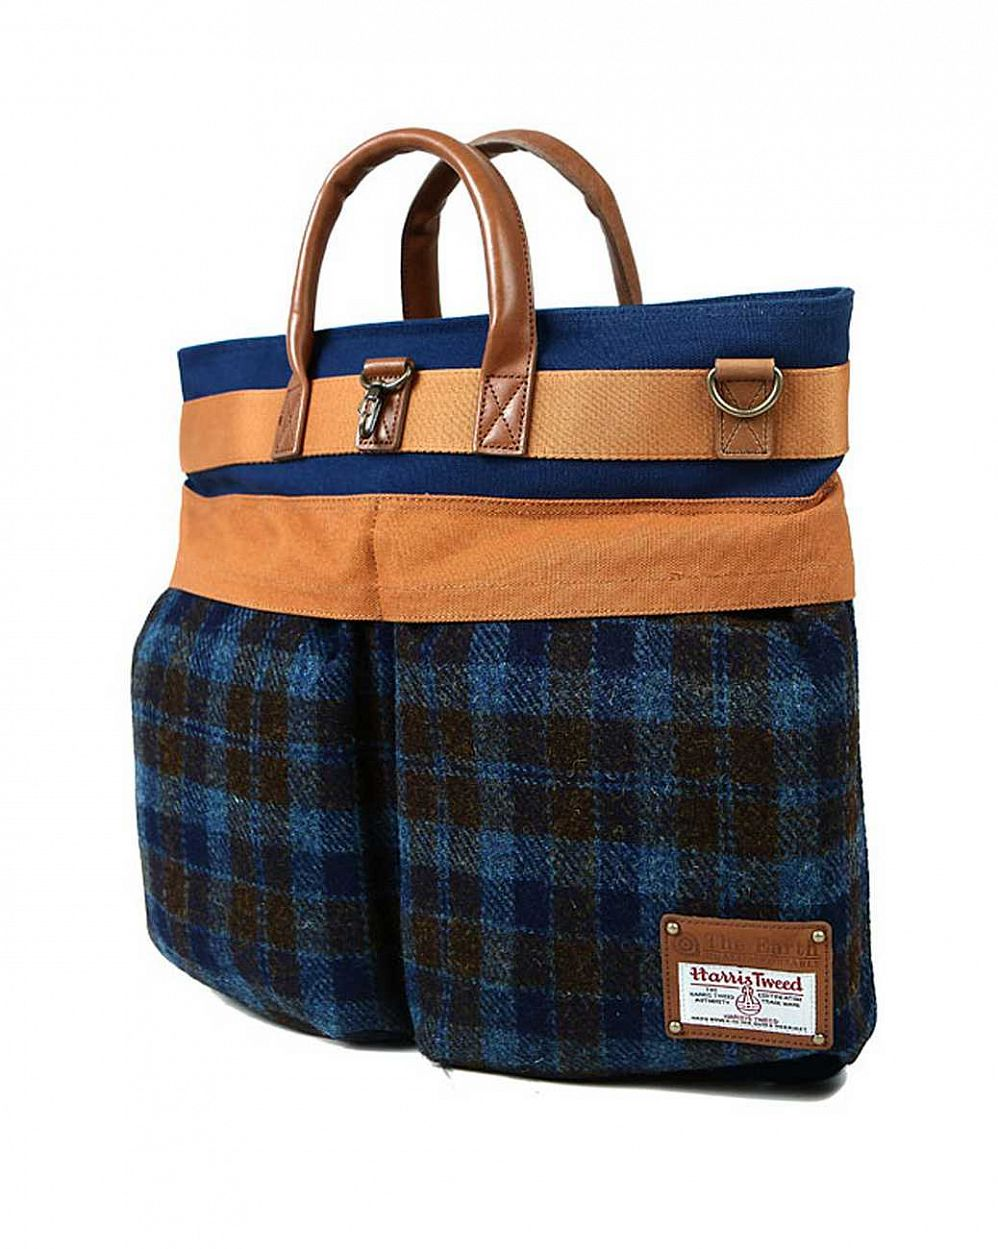 Сумка The earth Company Harris Tweed  (England) Helmet bag blue в розницу